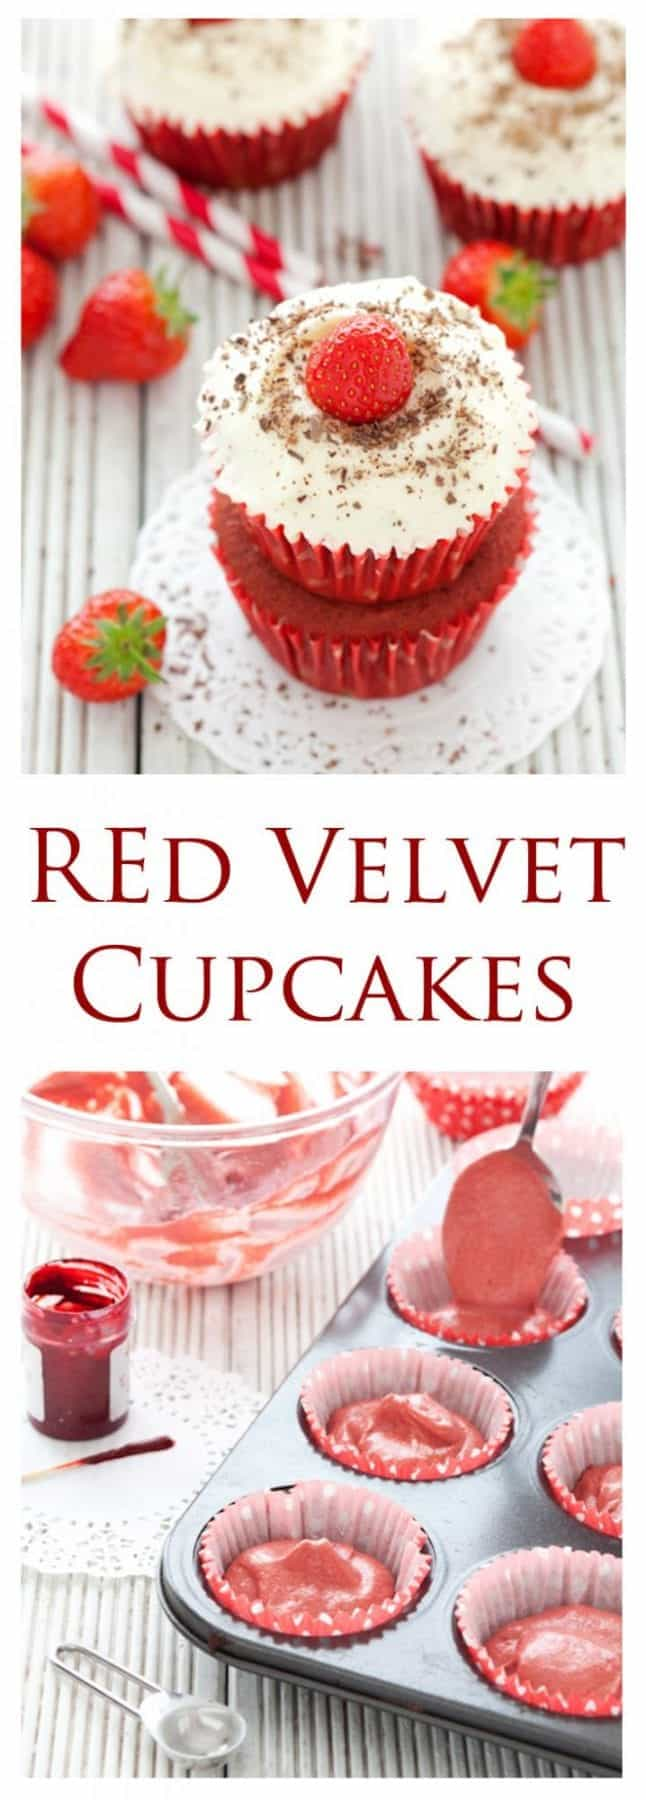 Flirtatious & fun. Red Velvet Cupcakes are wonderful eye candy and a joy to bite into. Hints of chocolate, vanilla & buttermilk crowned with thick cream cheese buttercream make these little treats irresistible.